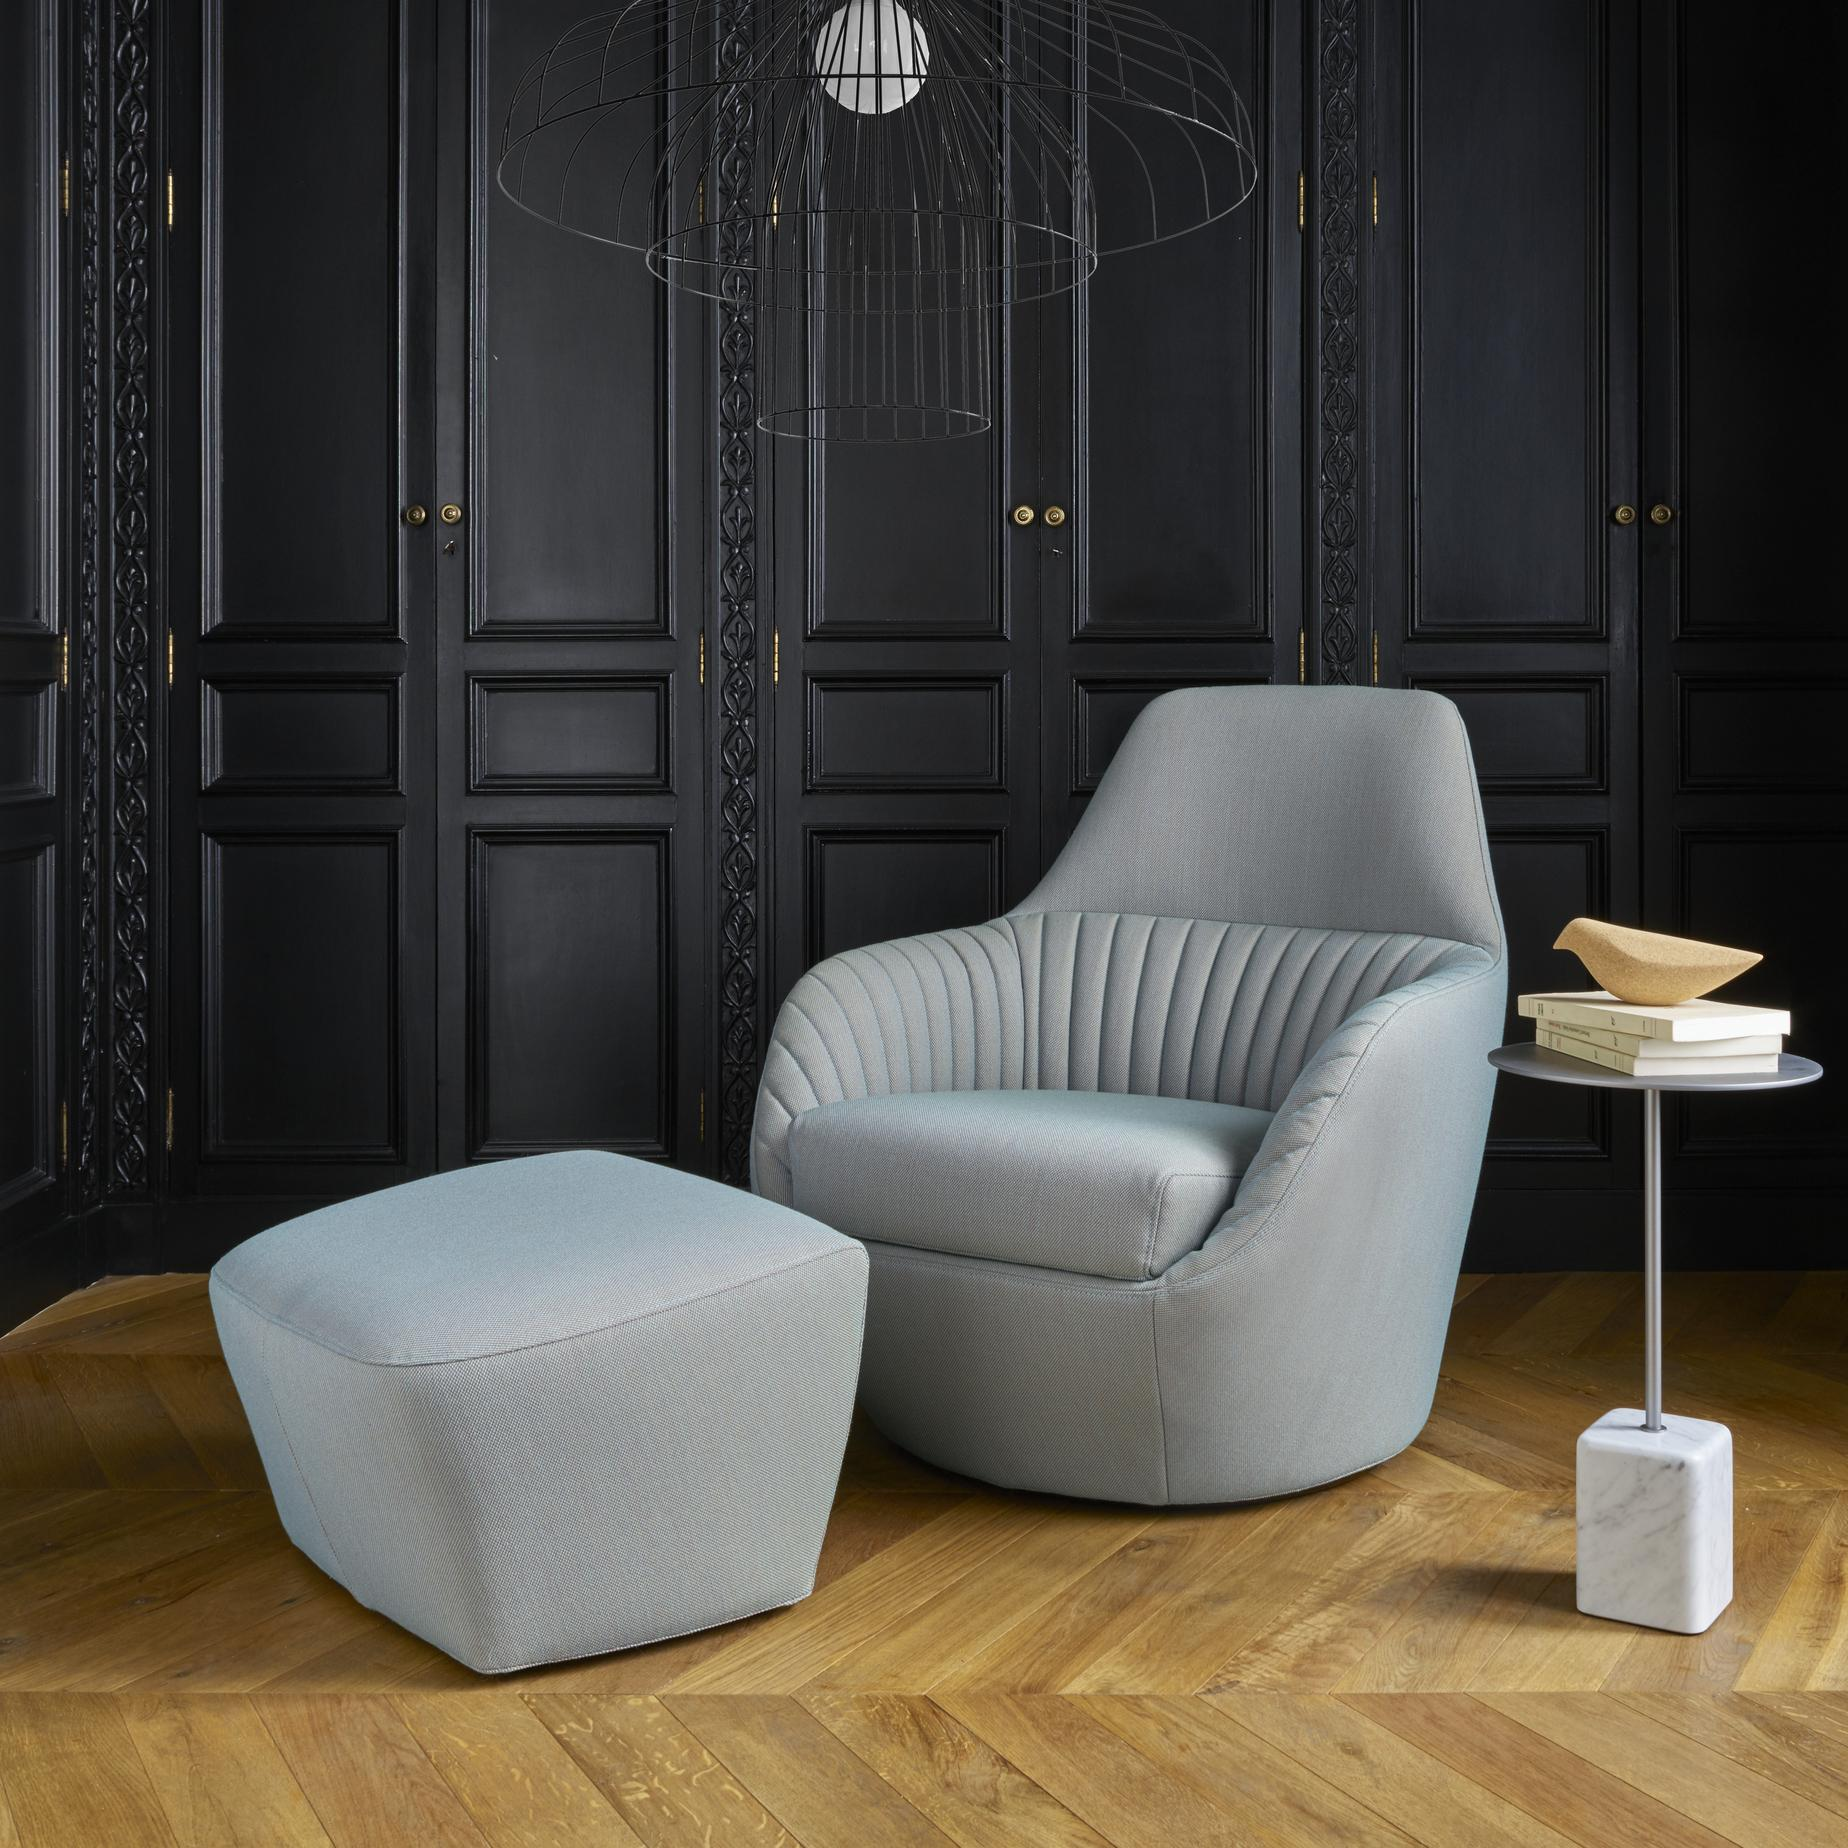 cupidon occasional tables from designer no duchaufour lawrance ligne roset official site. Black Bedroom Furniture Sets. Home Design Ideas